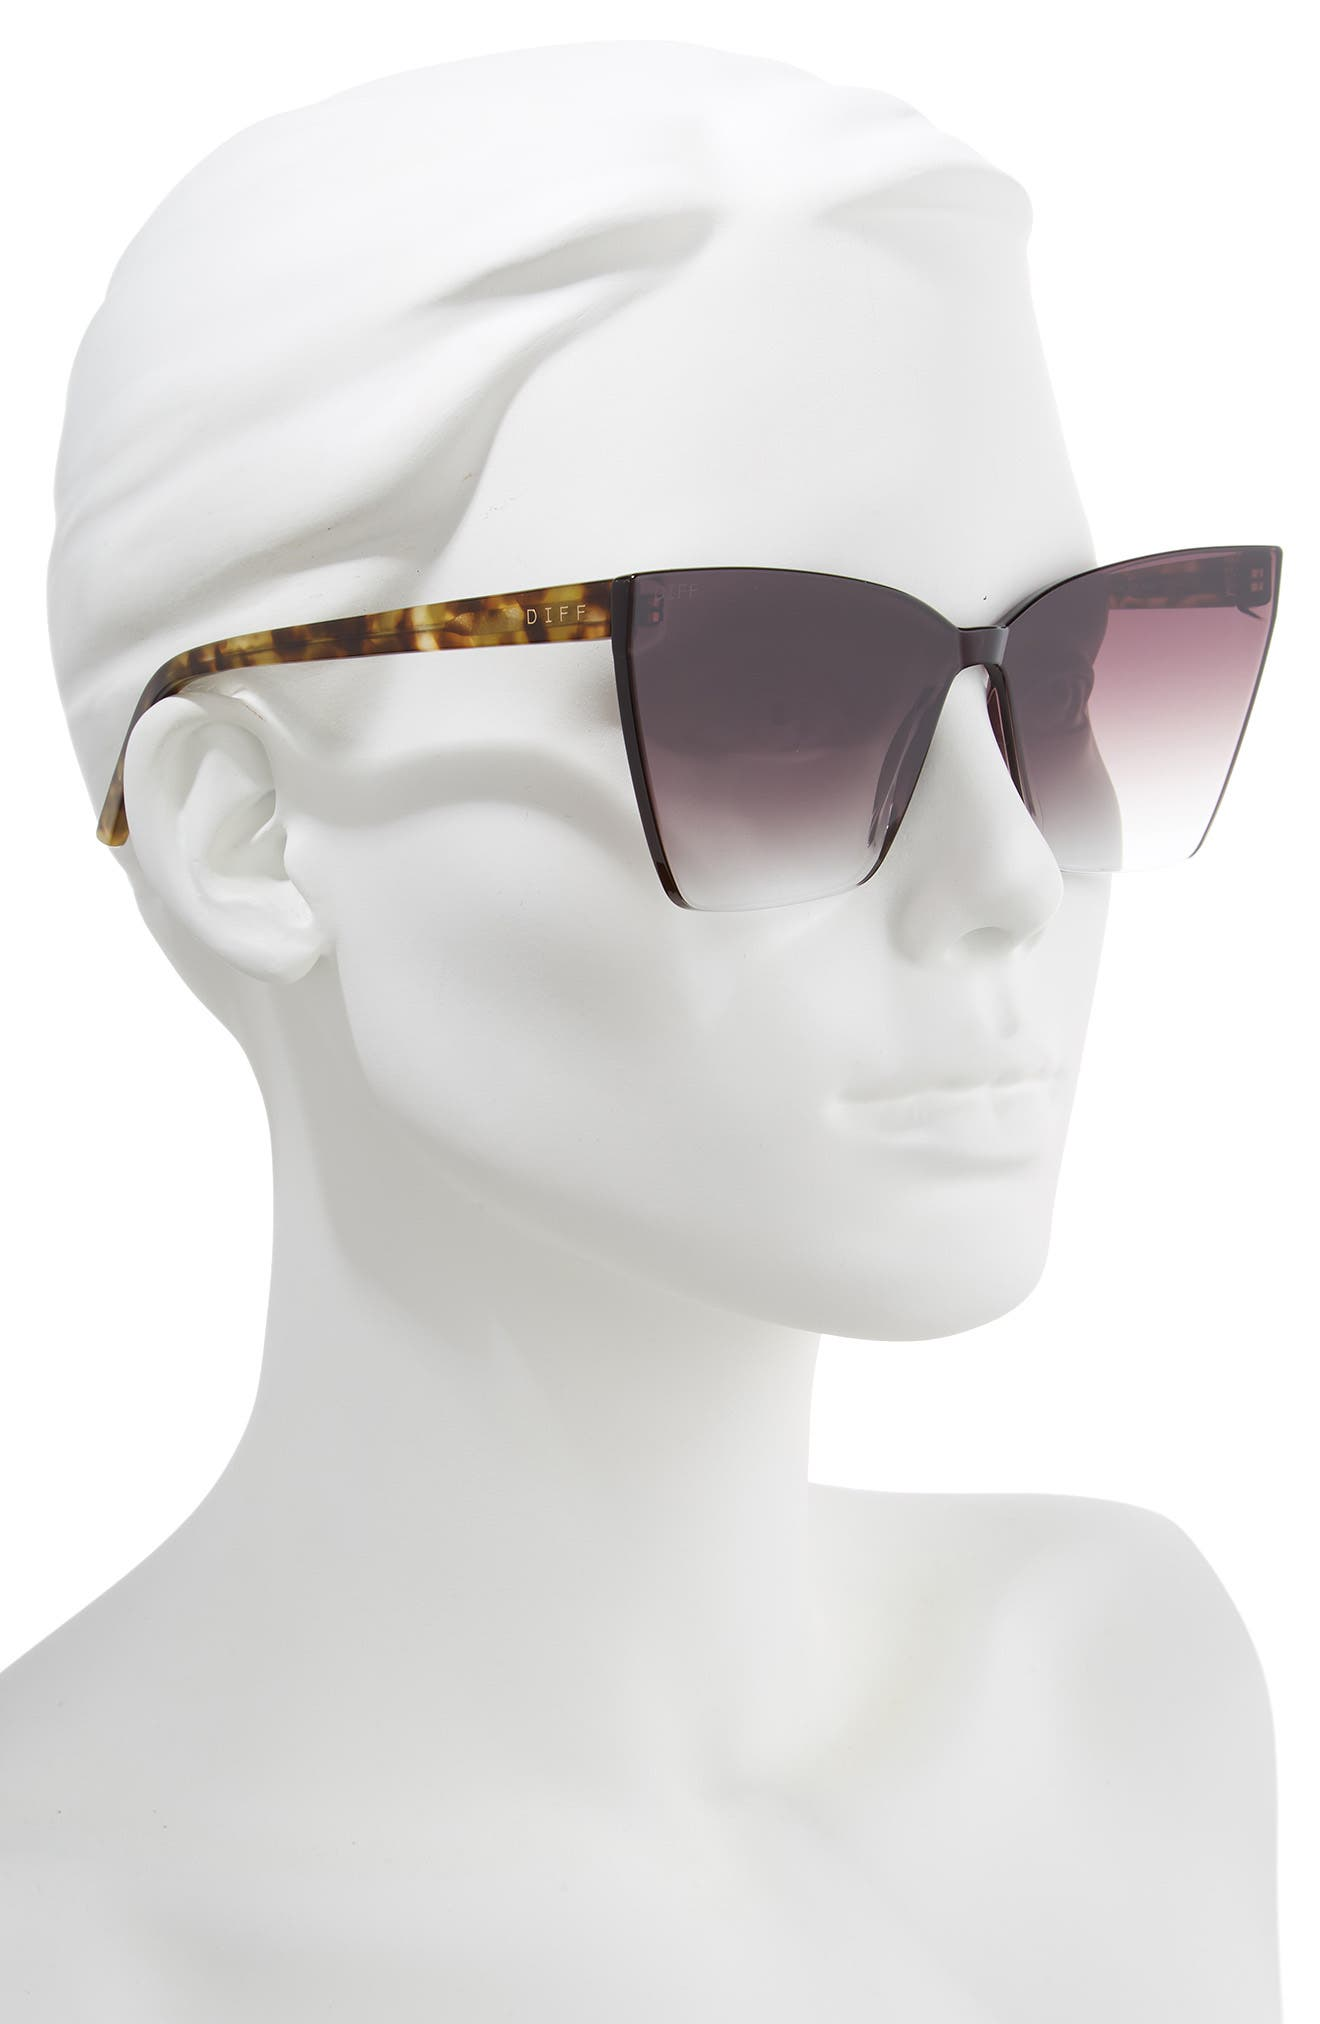 DIFF, Goldie 56mm Cat Eye Sunglasses, Alternate thumbnail 2, color, 200